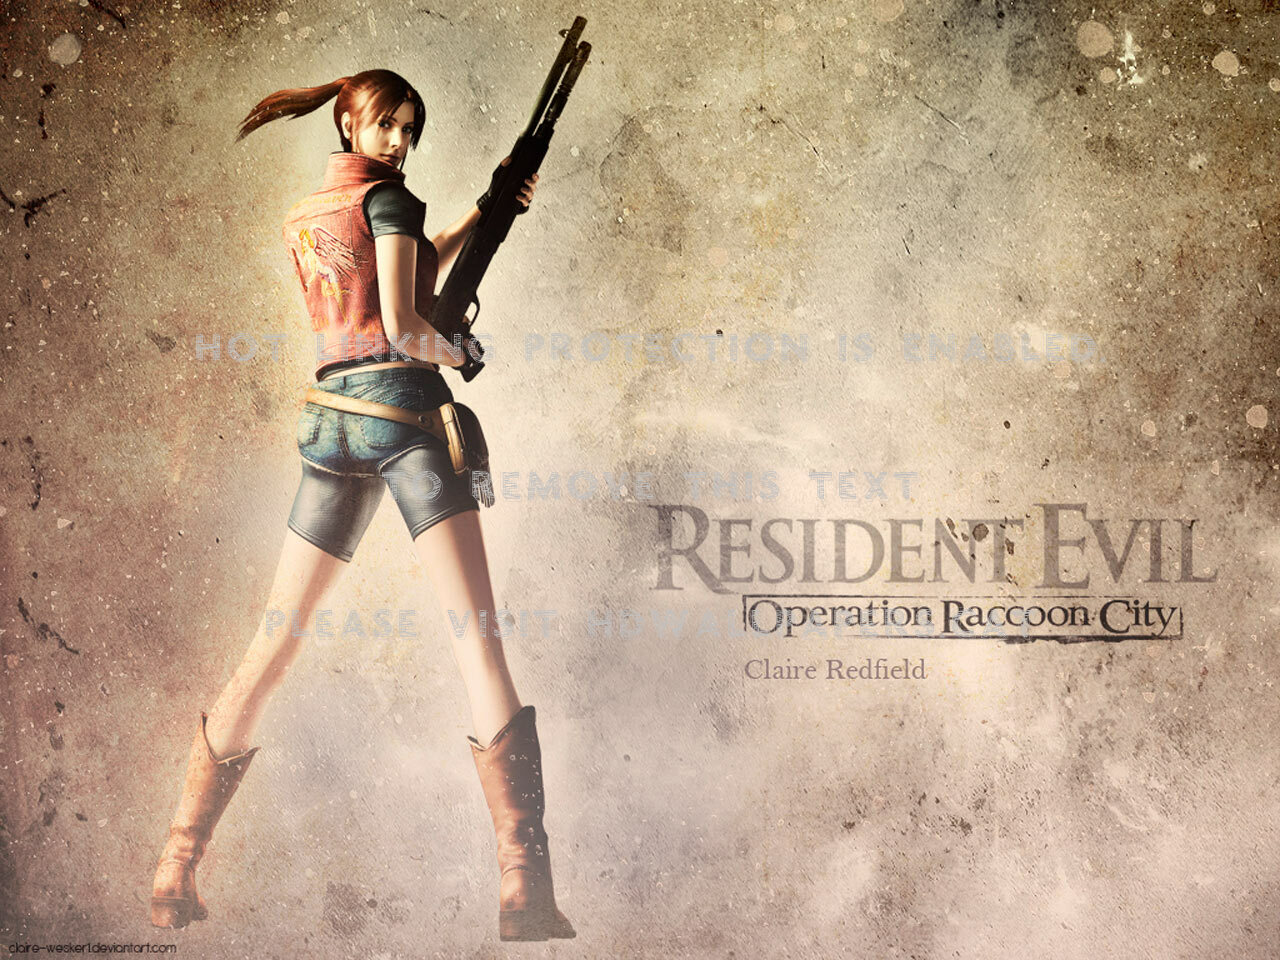 Resident Evil Operation Raccoon City Claire Redfield 1563896